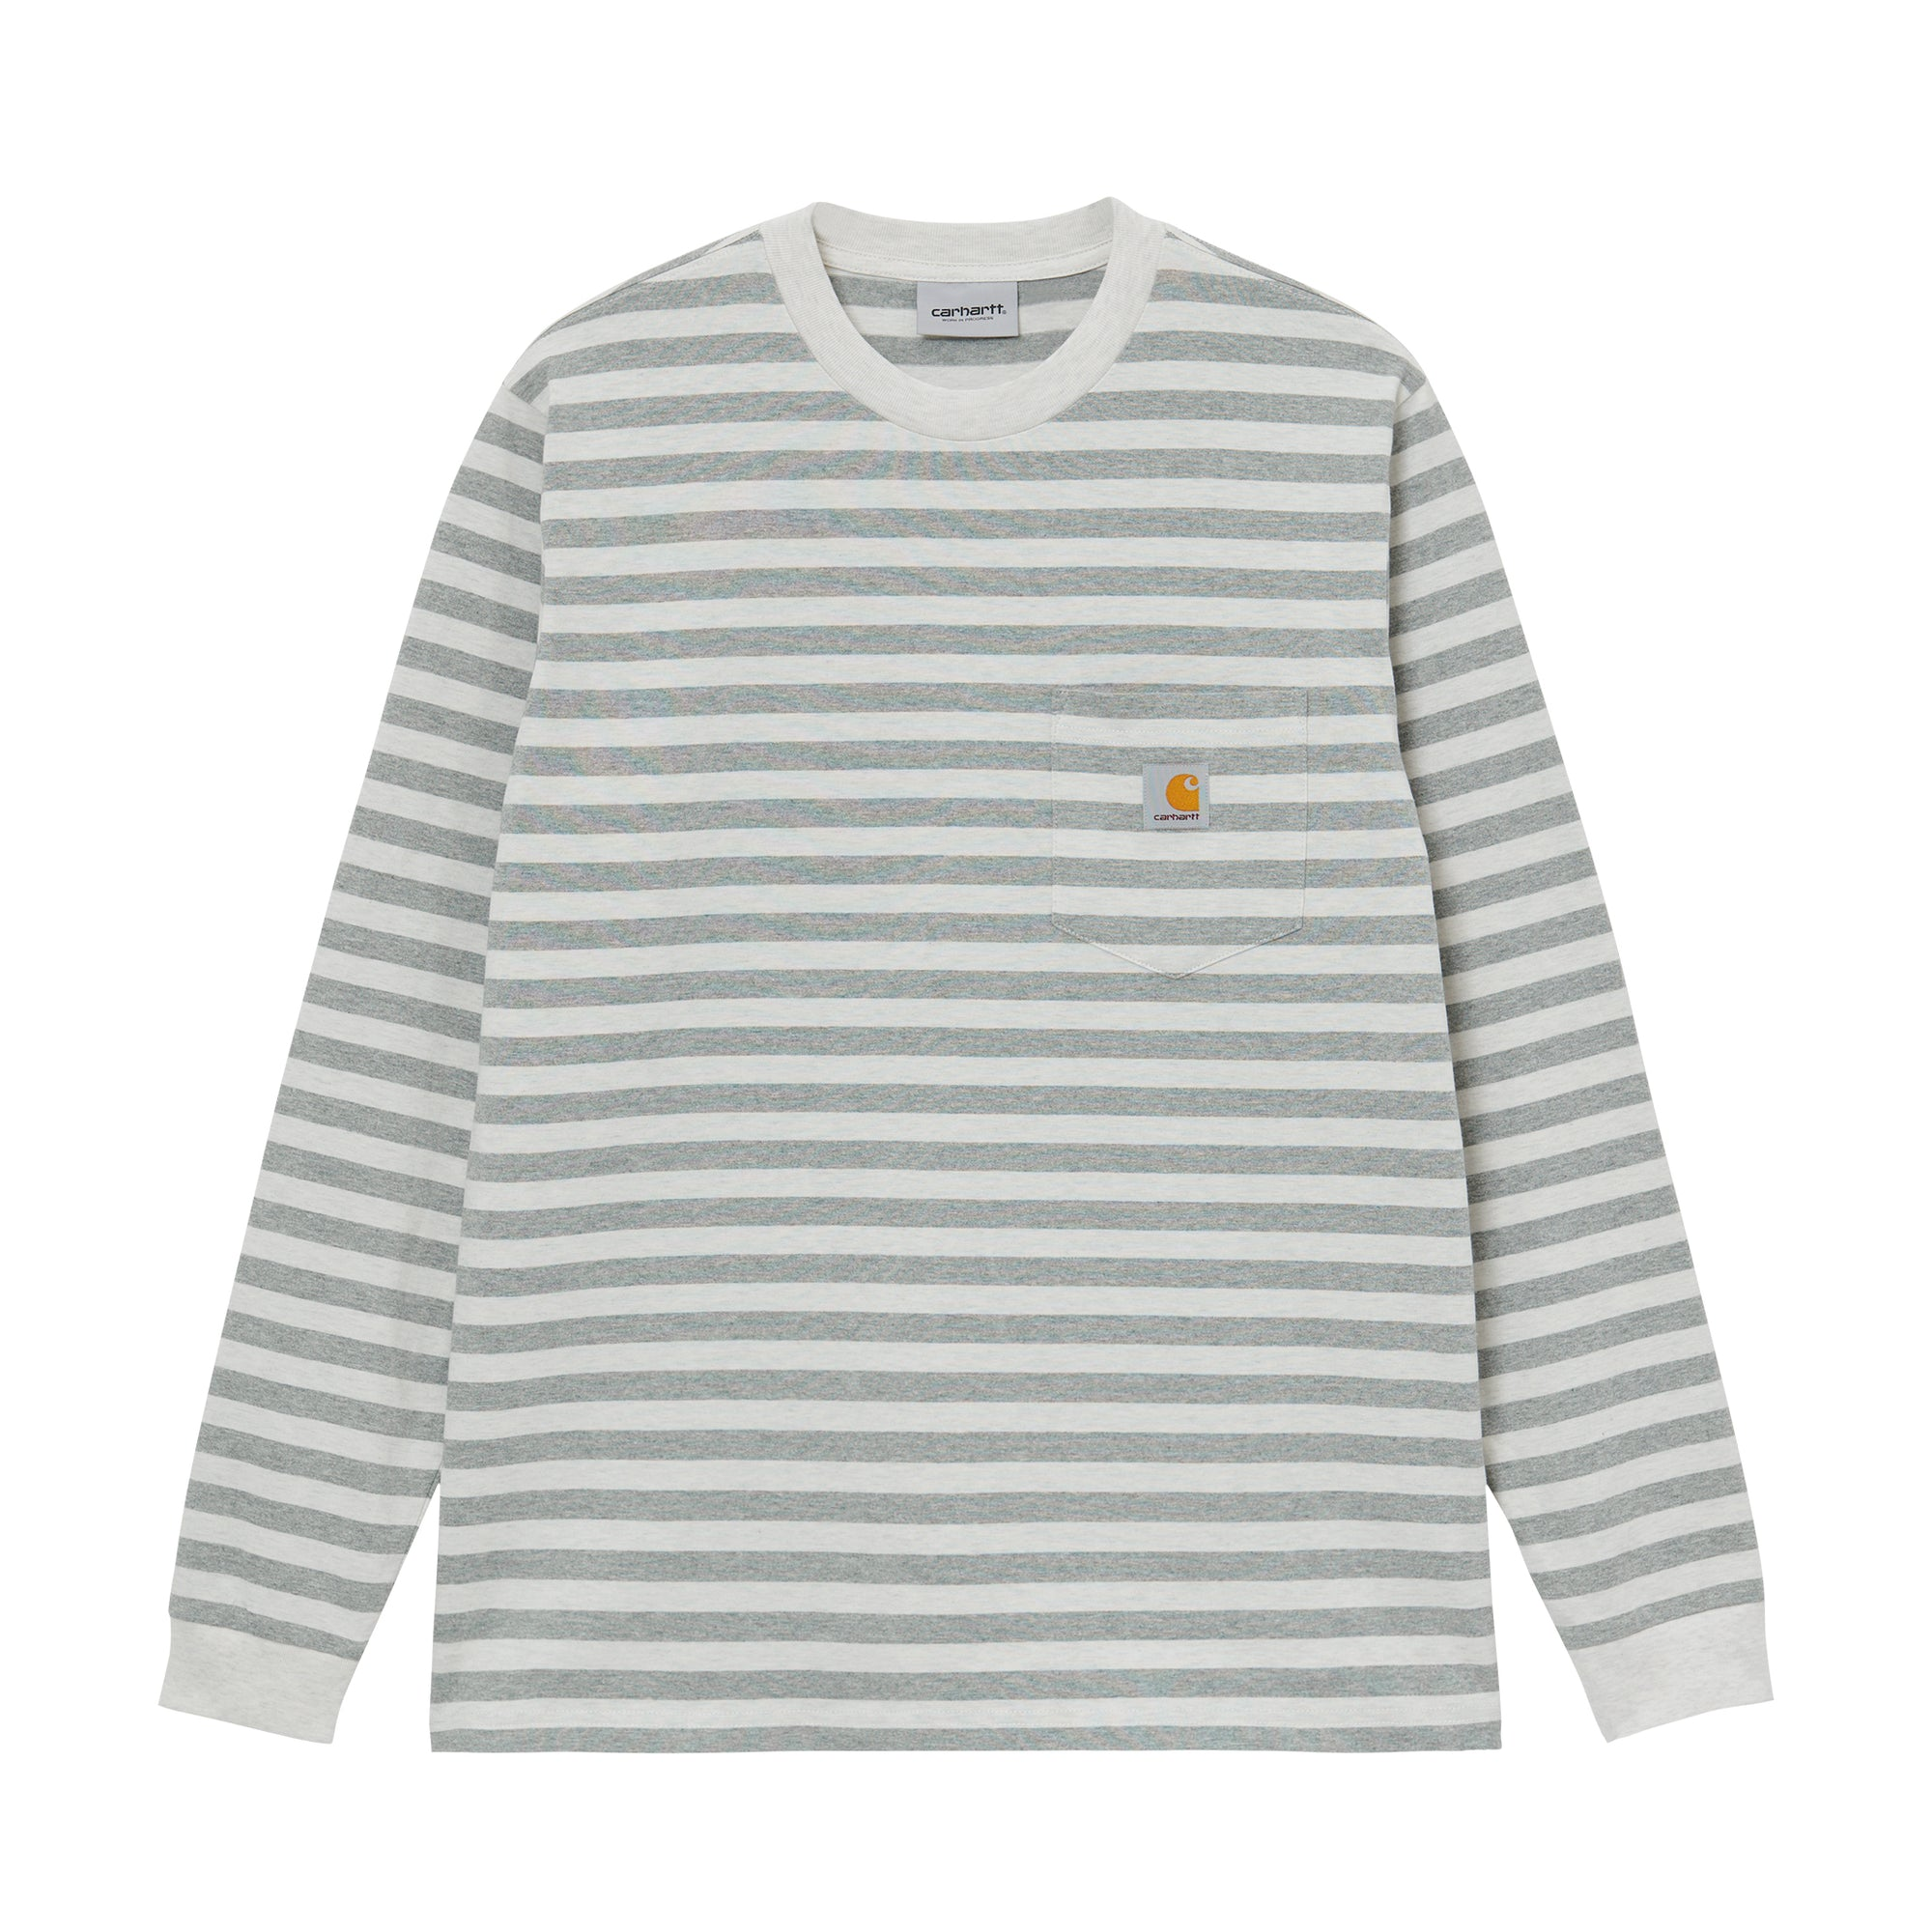 Carhartt WIP L/S Scotty Pocket T-Shirt: White Heather/Grey Heather - The Union Project